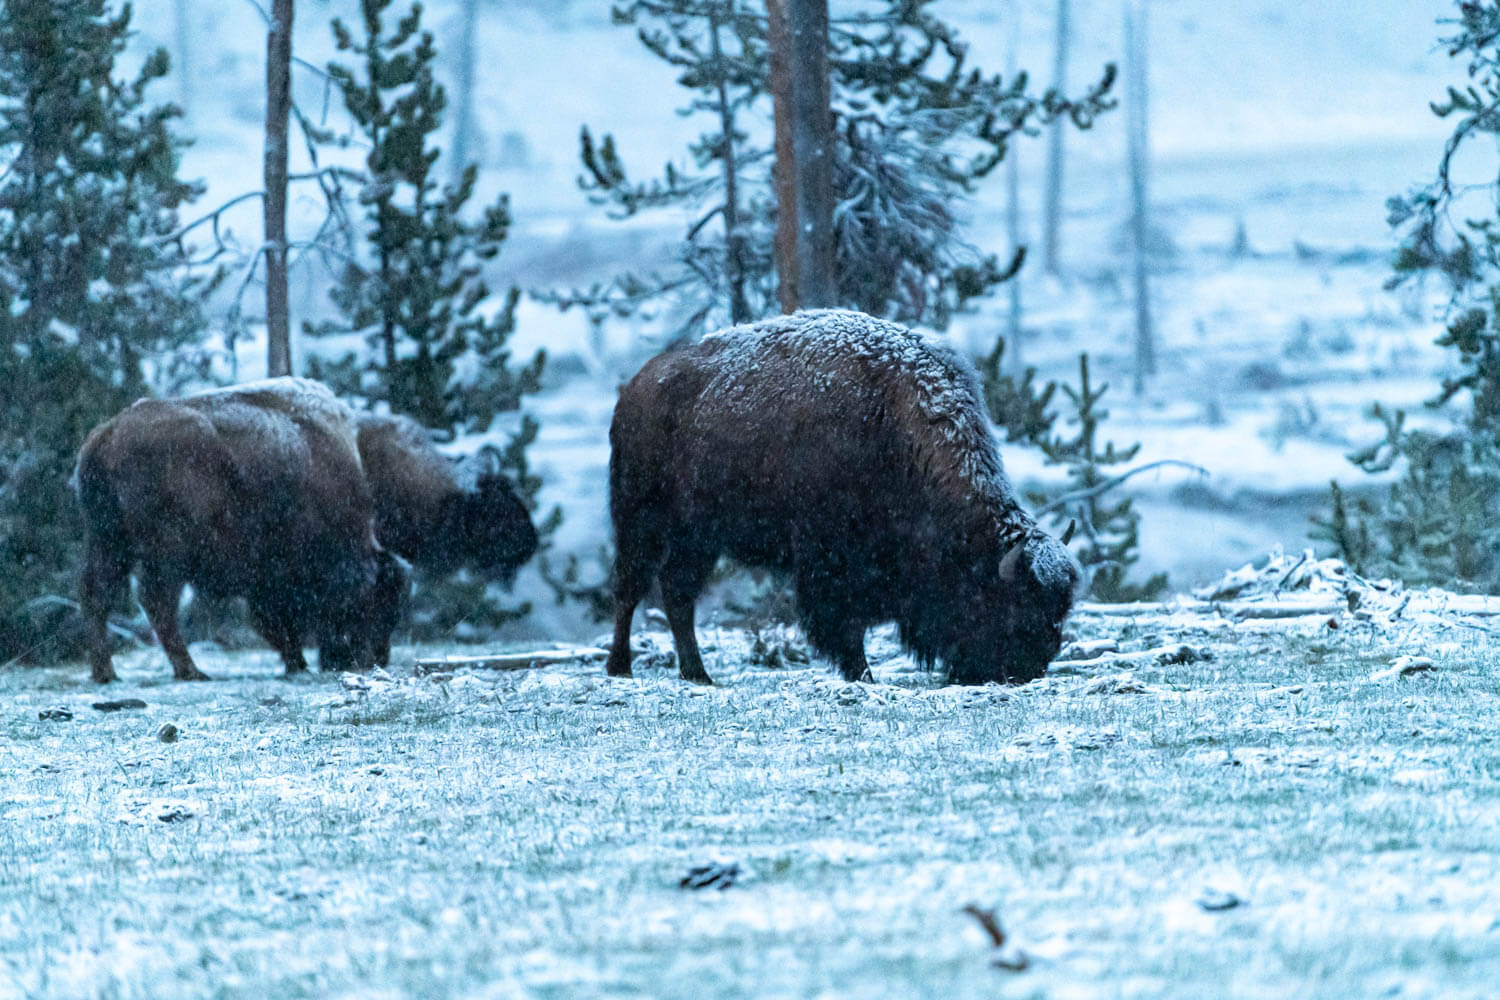 Bison grazing in the snow at Yellowstone National Park